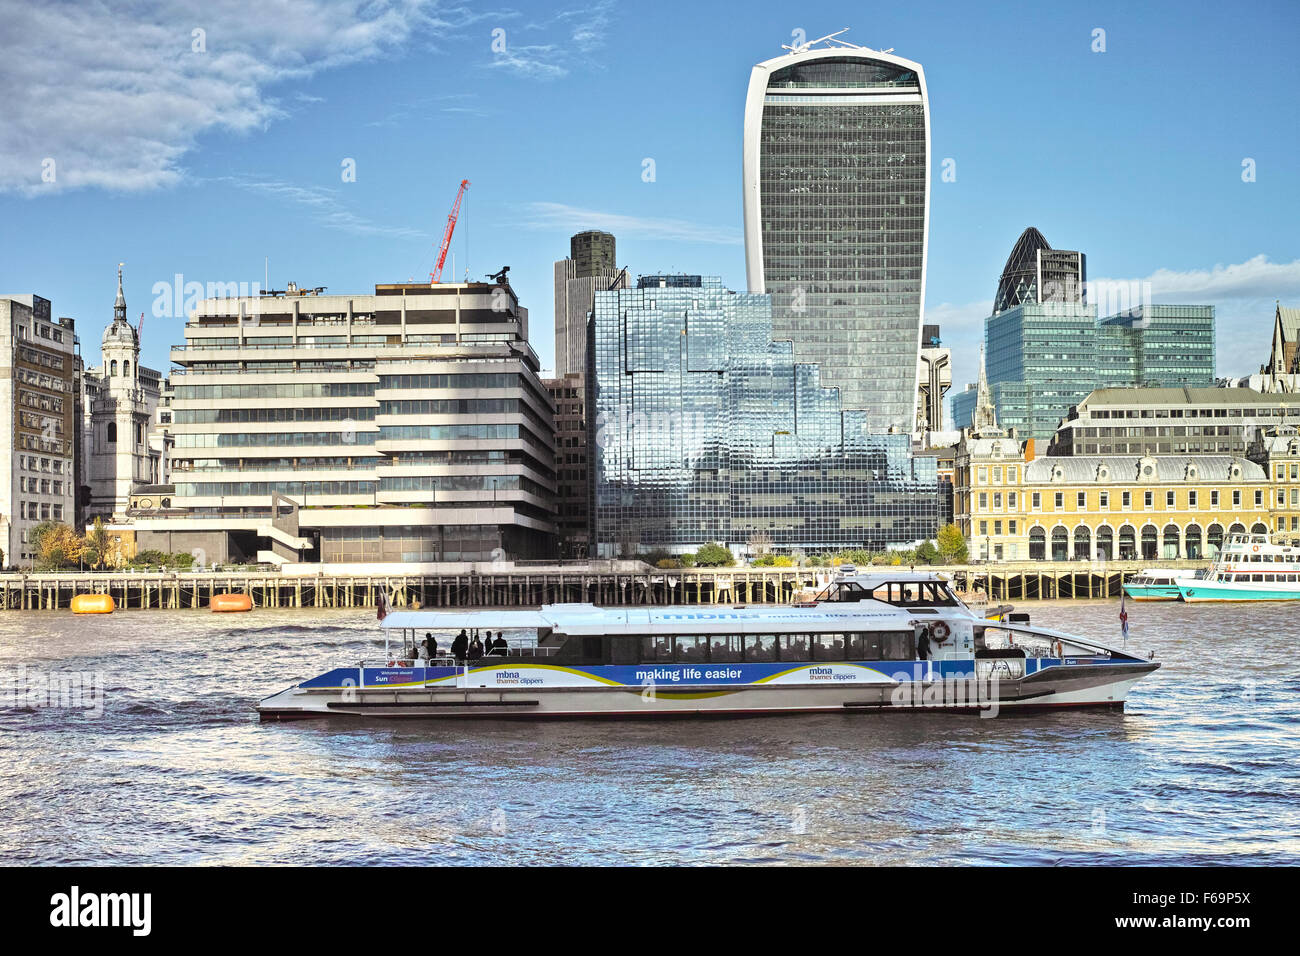 A London Thames Clipper waterbus passes in front of 20 Fenchurch Street and the City of London square mile waterfront - Stock Image